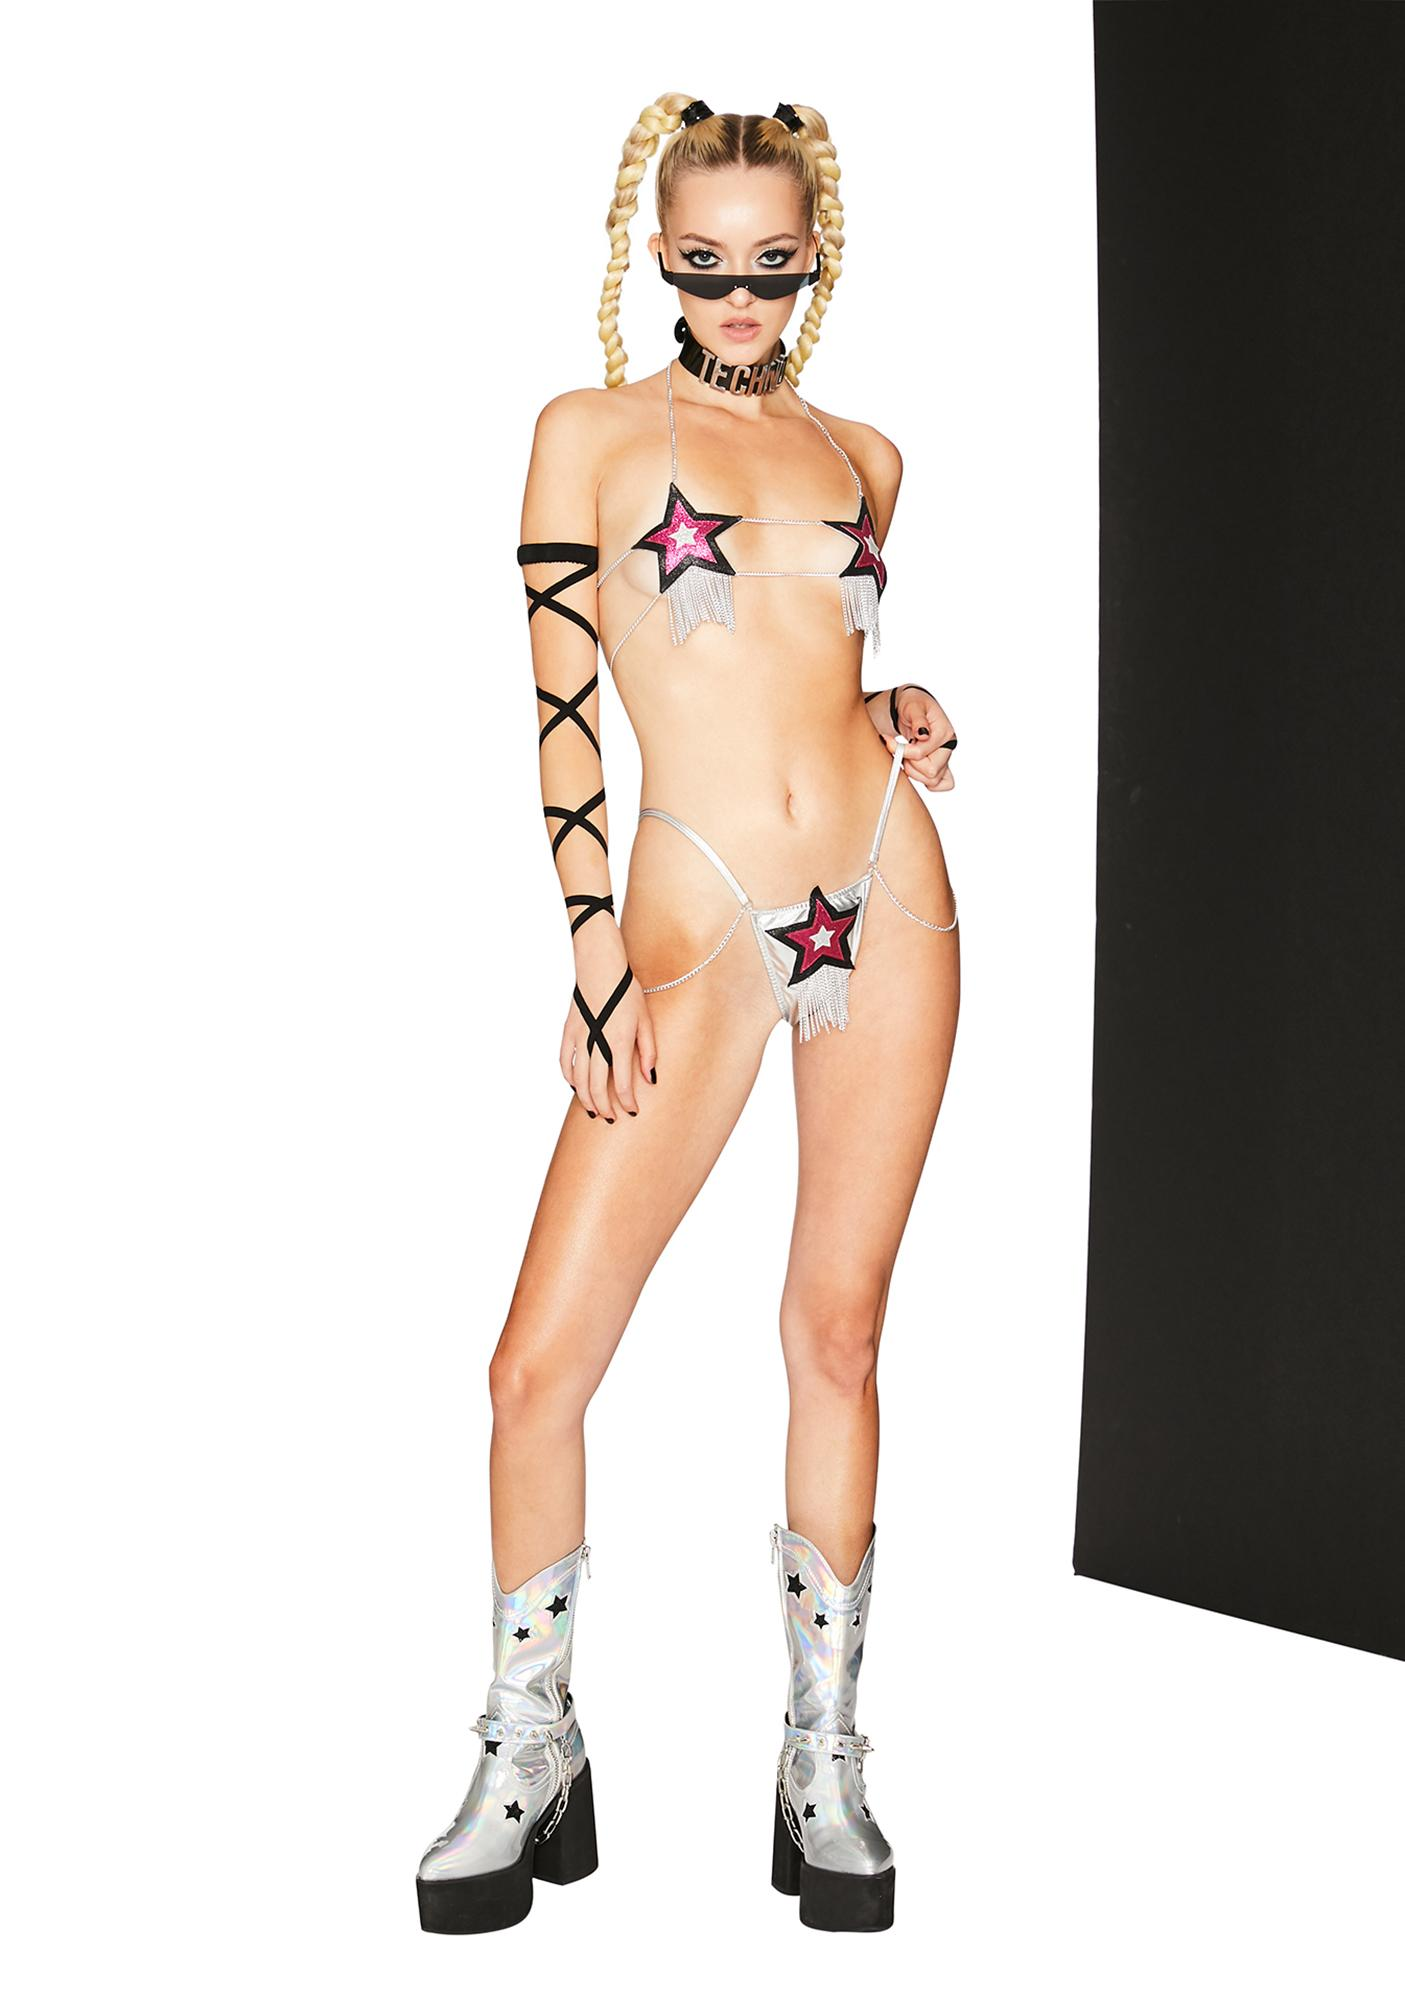 Club Exx Synth Supernova Chain Undies